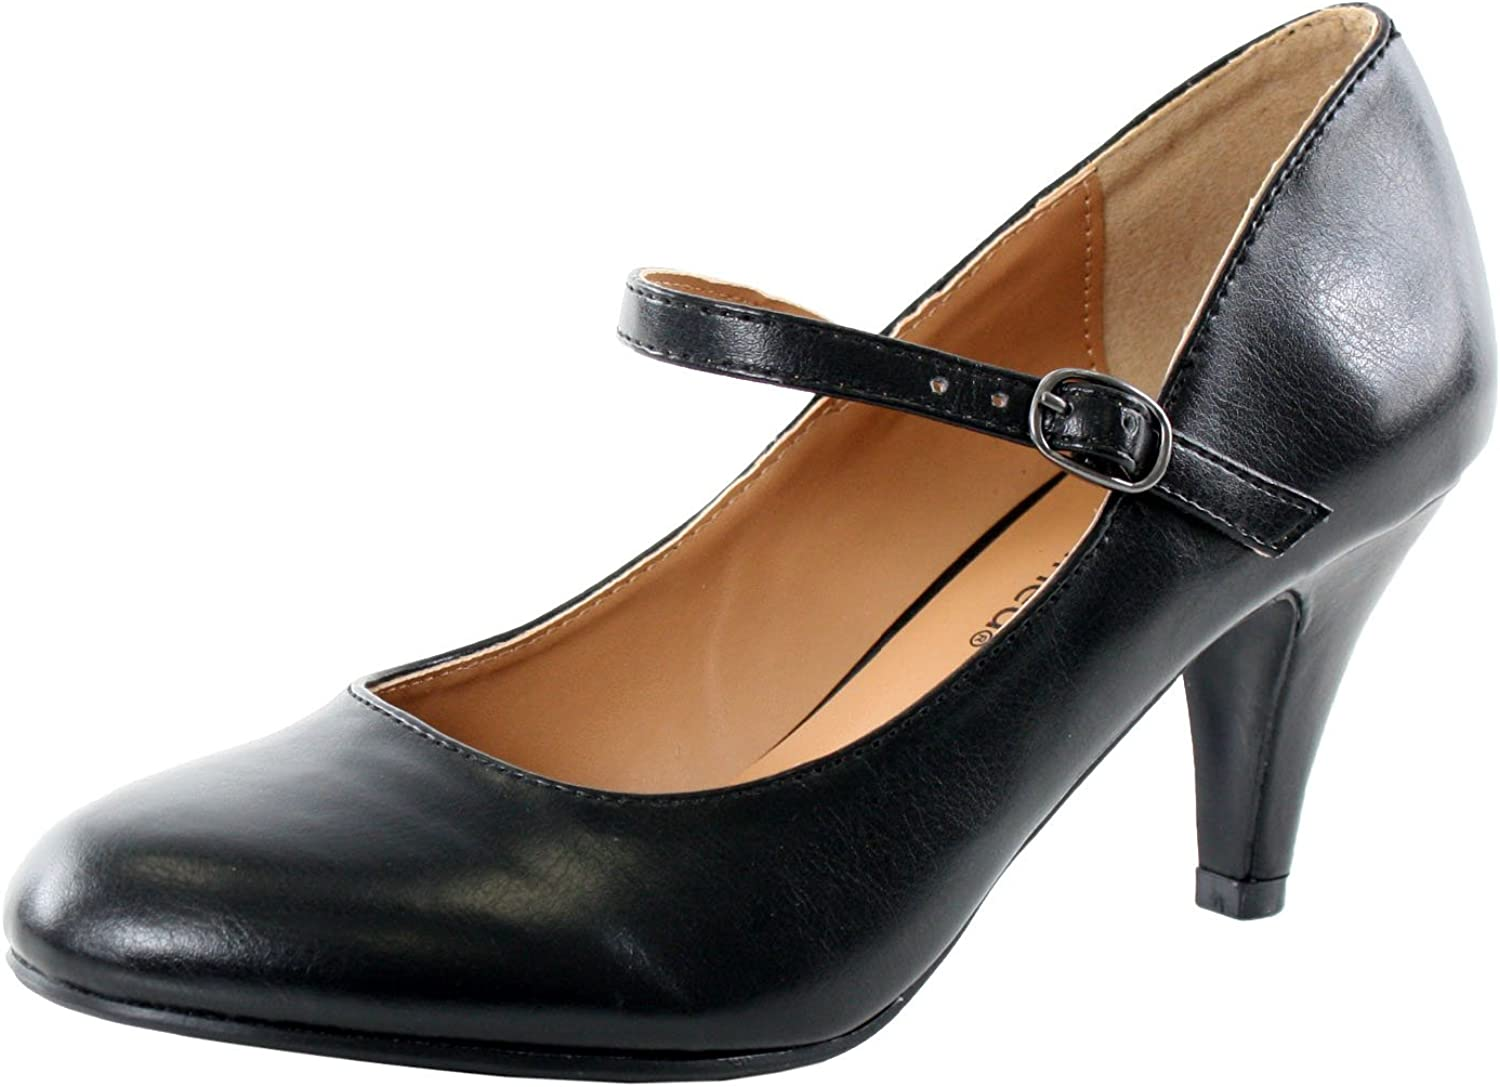 City Classified Popular popular Womens Shoes Ranking TOP12 Pumps Kaylee-H